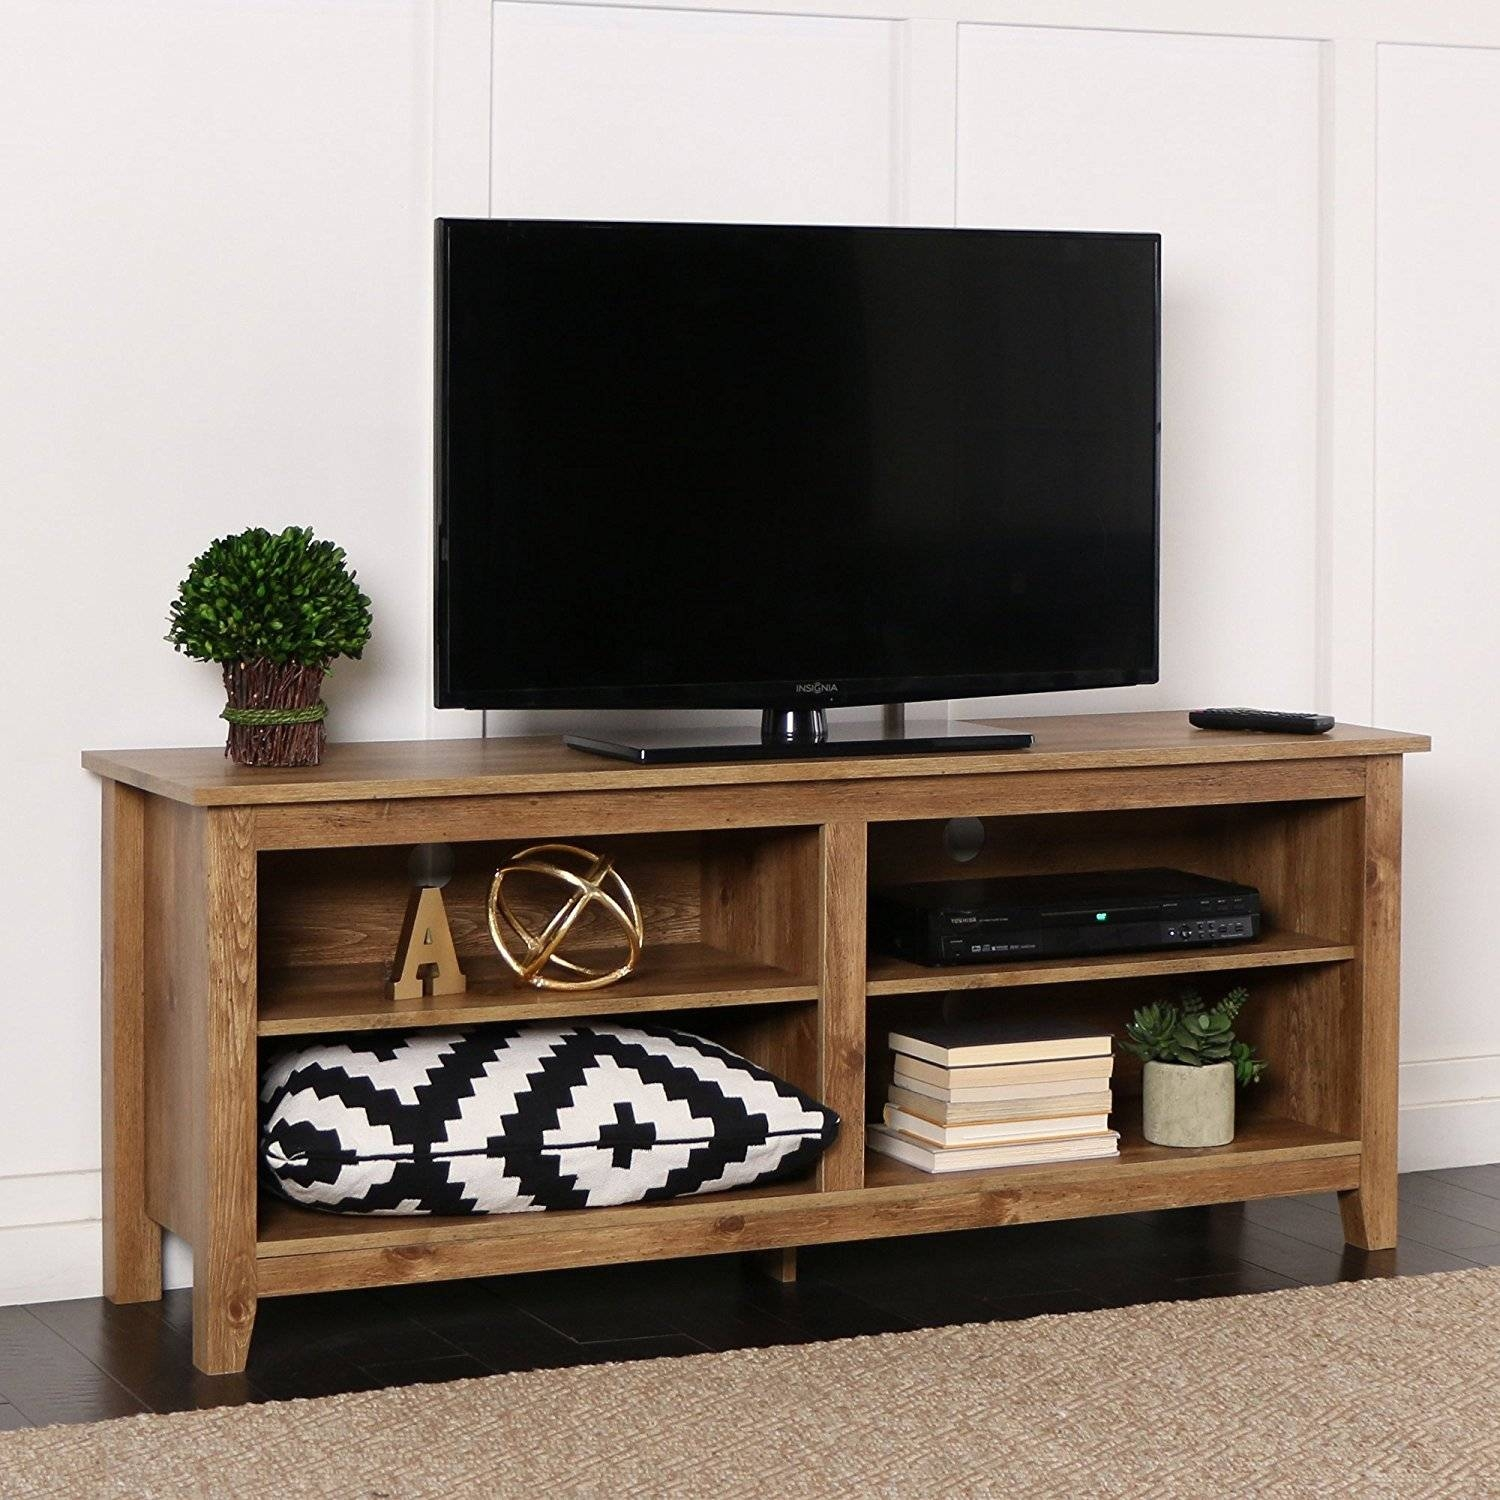 Tv Stand For 43 Inch Tv Throughout Tv Stands For 43 Inch Tv (View 2 of 15)